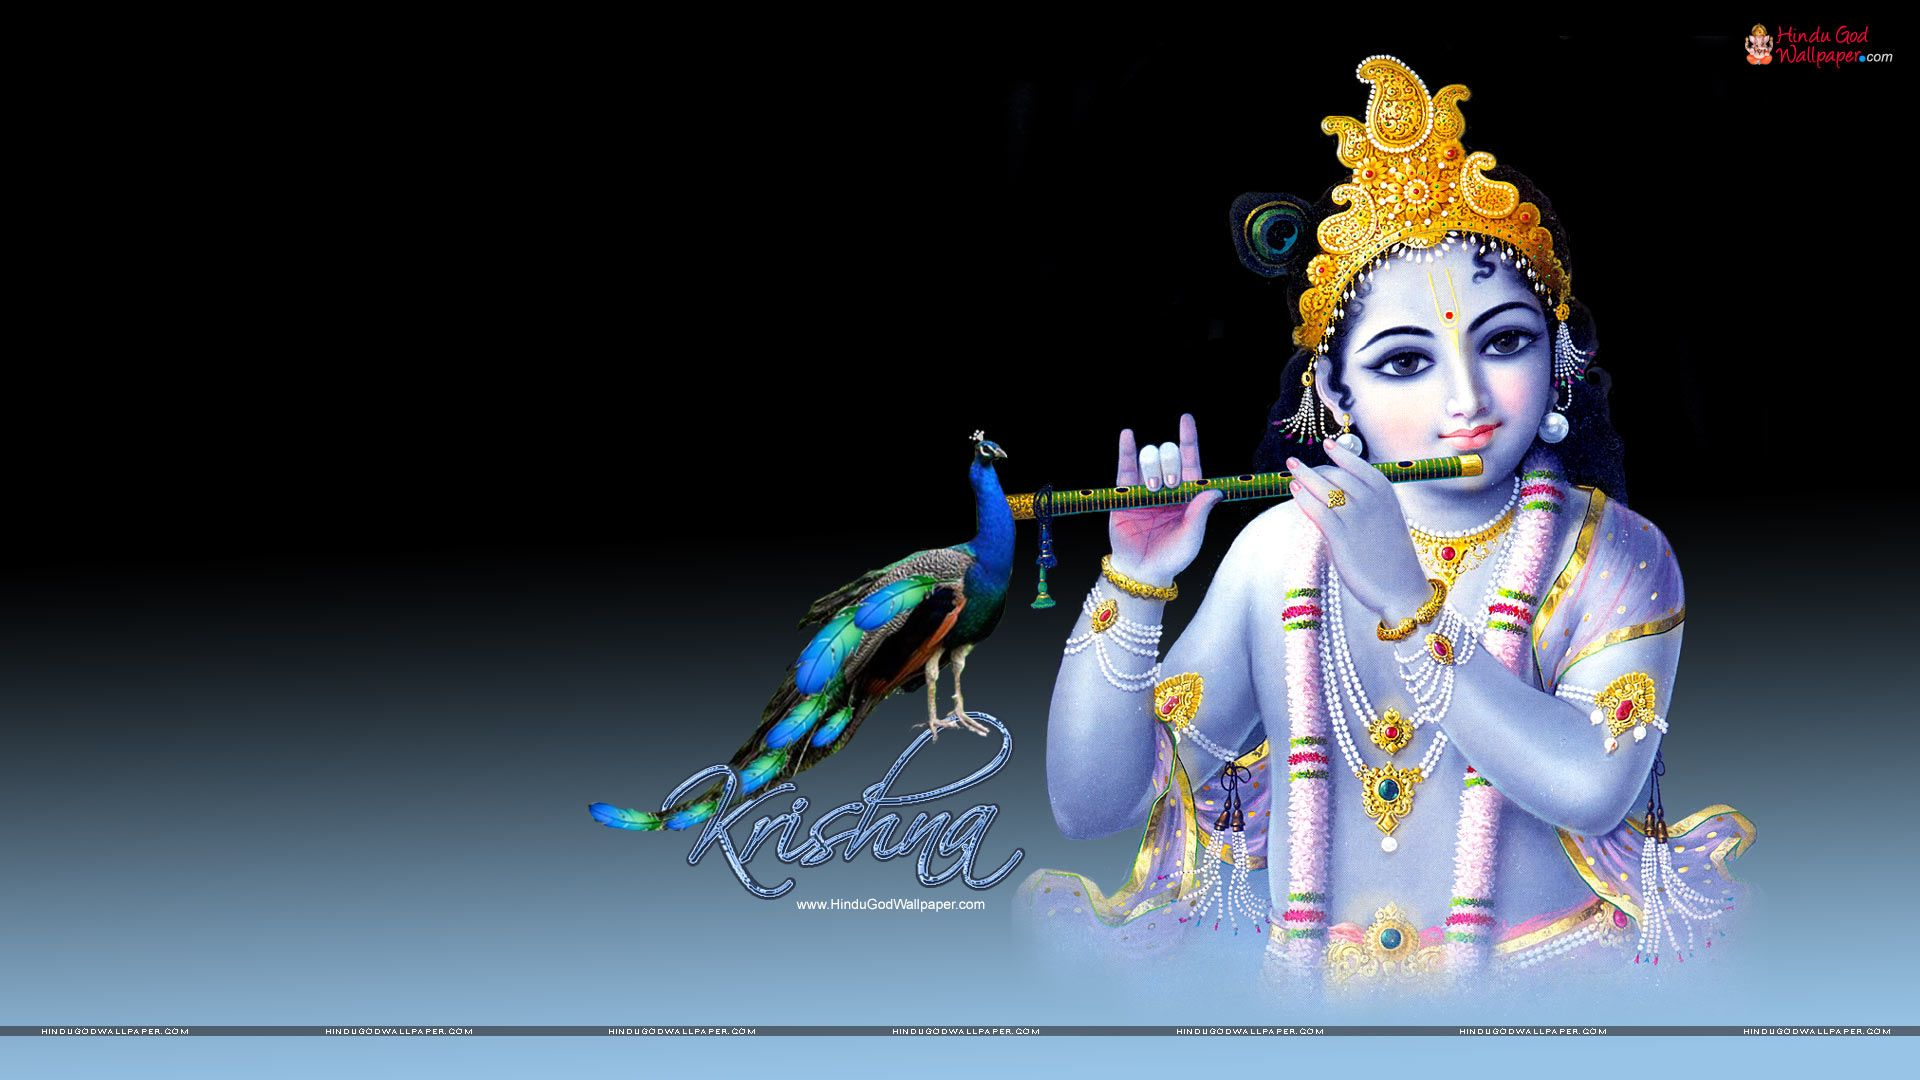 Bal Krishna Hd Full Size Wallpapers Free Download Bal Krishna